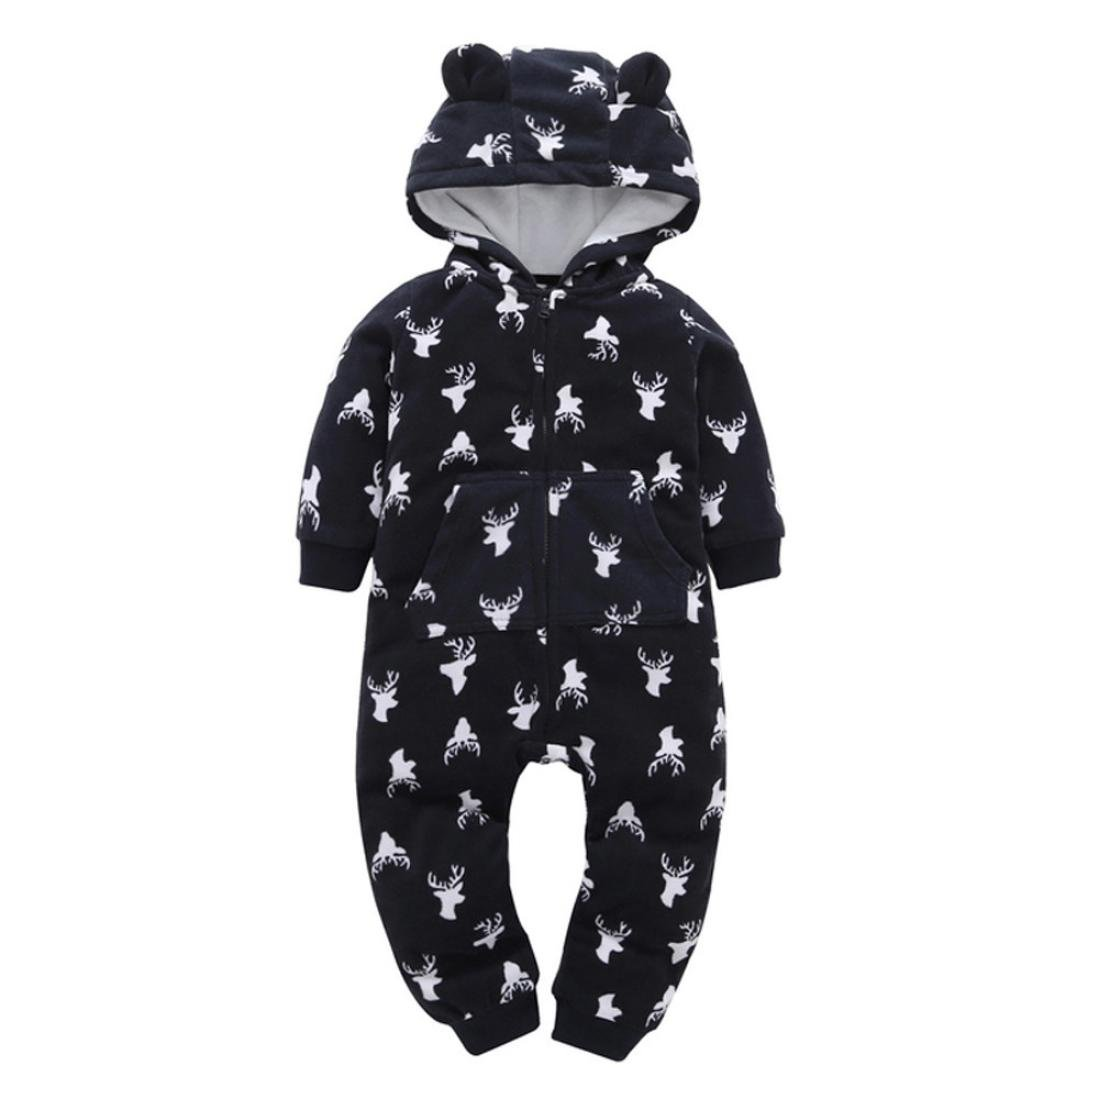 Gotd Newborn Infant Baby Boys Girls Thicker Christmas Print Hooded Romper Jumpsuit Home Clothes Outfits Winter Fleece (6-9 Months, White) Goodtrade8